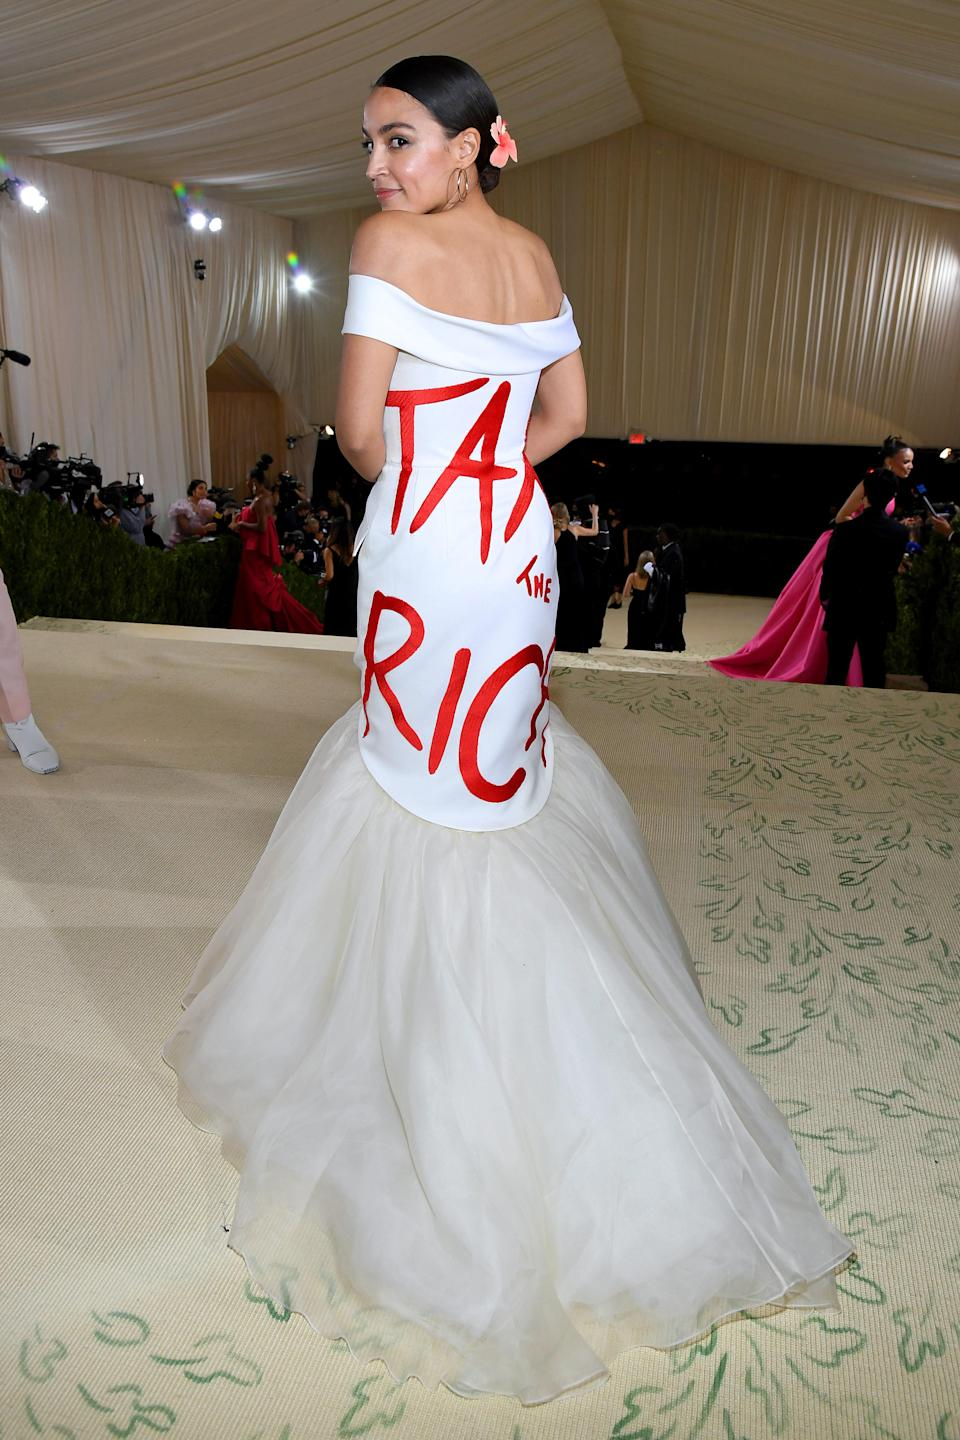 NEW YORK, NEW YORK - SEPTEMBER 13: Alexandria Ocasio-Cortez attends The 2021 Met Gala Celebrating In America: A Lexicon Of Fashion at Metropolitan Museum of Art on September 13, 2021 in New York City. (Photo by Kevin Mazur/MG21/Getty Images For The Met Museum/Vogue)